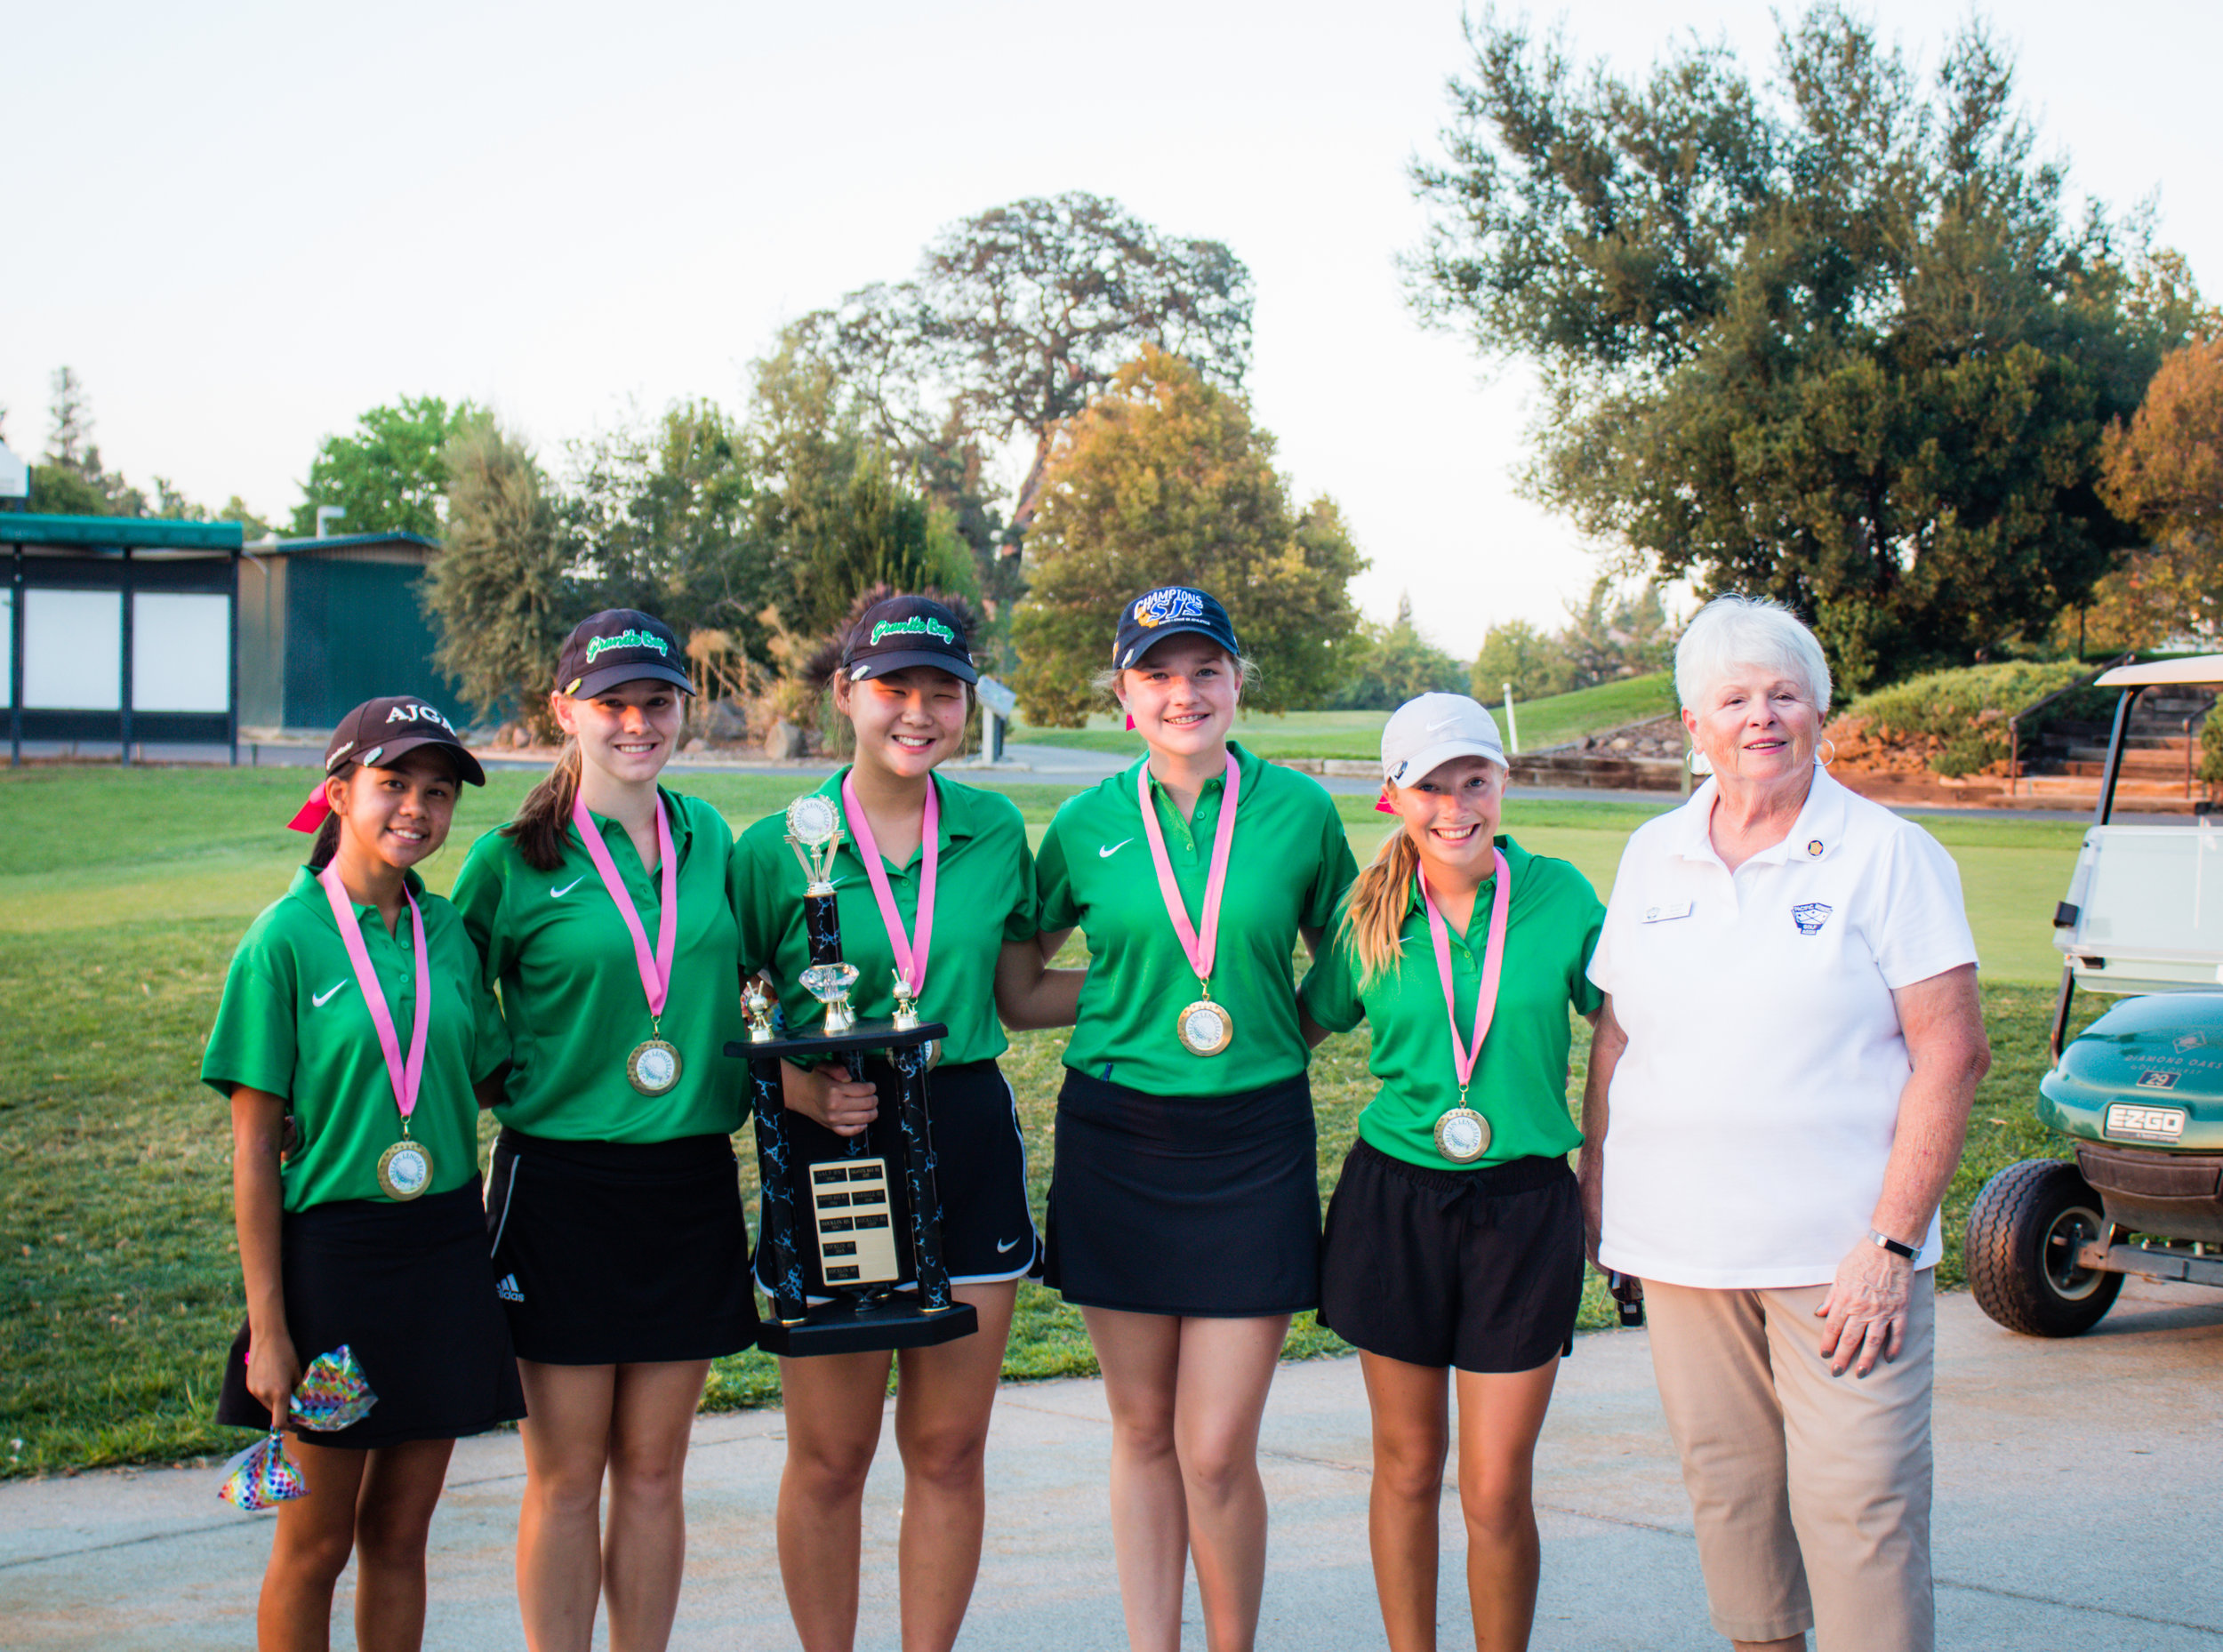 Granite Bay High School golfers, along with PWGA Vice President, Sue Kort.